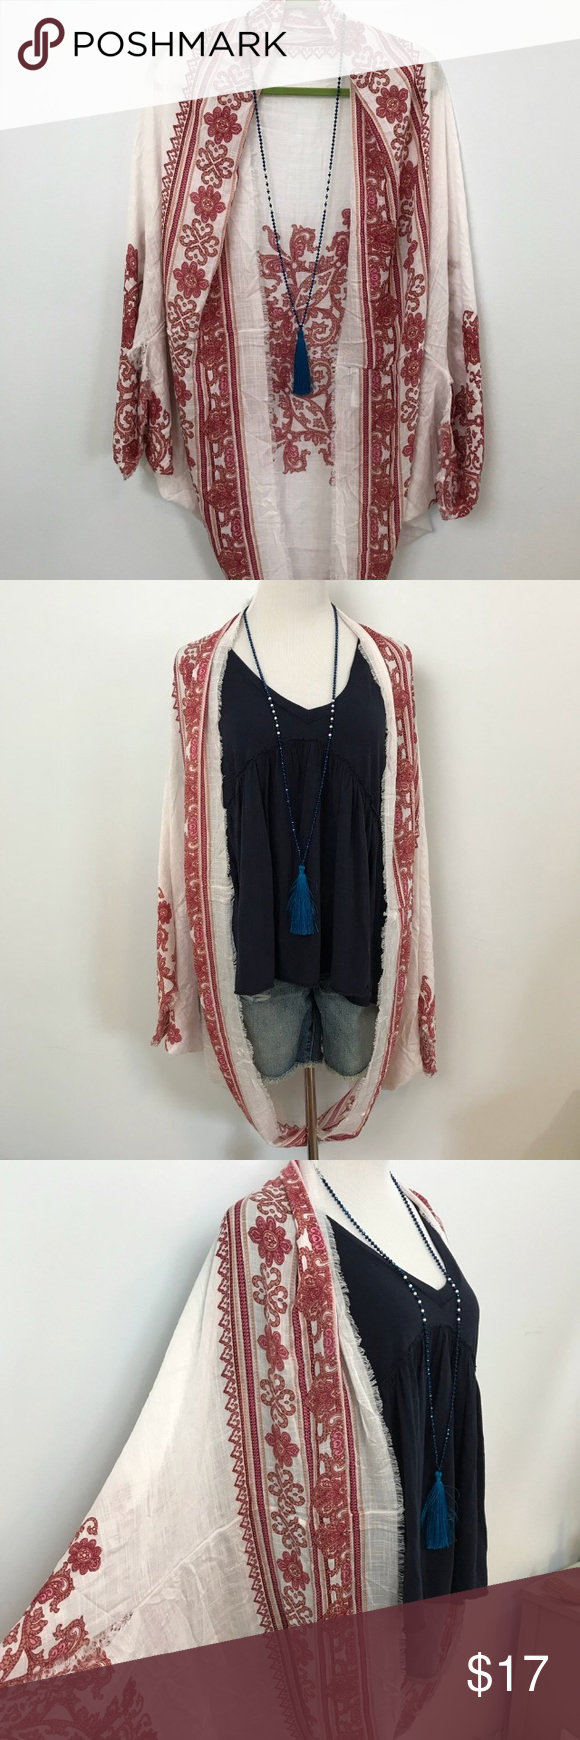 AEO Cocoon Kimono Festival Shrug Red White American Eagle Outfitters  Cocoon Kimono Festival Shrug Red White. Raw edge and a Gypsy feeling to it. Vacation must have, easy to pack and throw on in a moments notice and fold away. Great for beach honeymoon, warm on the plane or sailboat and a Coachella MUST. NWOT. Last pic is outfit inspo. American Eagle Outfitters Accessories Scarves & Wraps #beachhoneymoonclothes AEO Cocoon Kimono Festival Shrug Red White American Eagle Outfitters  Cocoon Kimono F #beachhoneymoonclothes